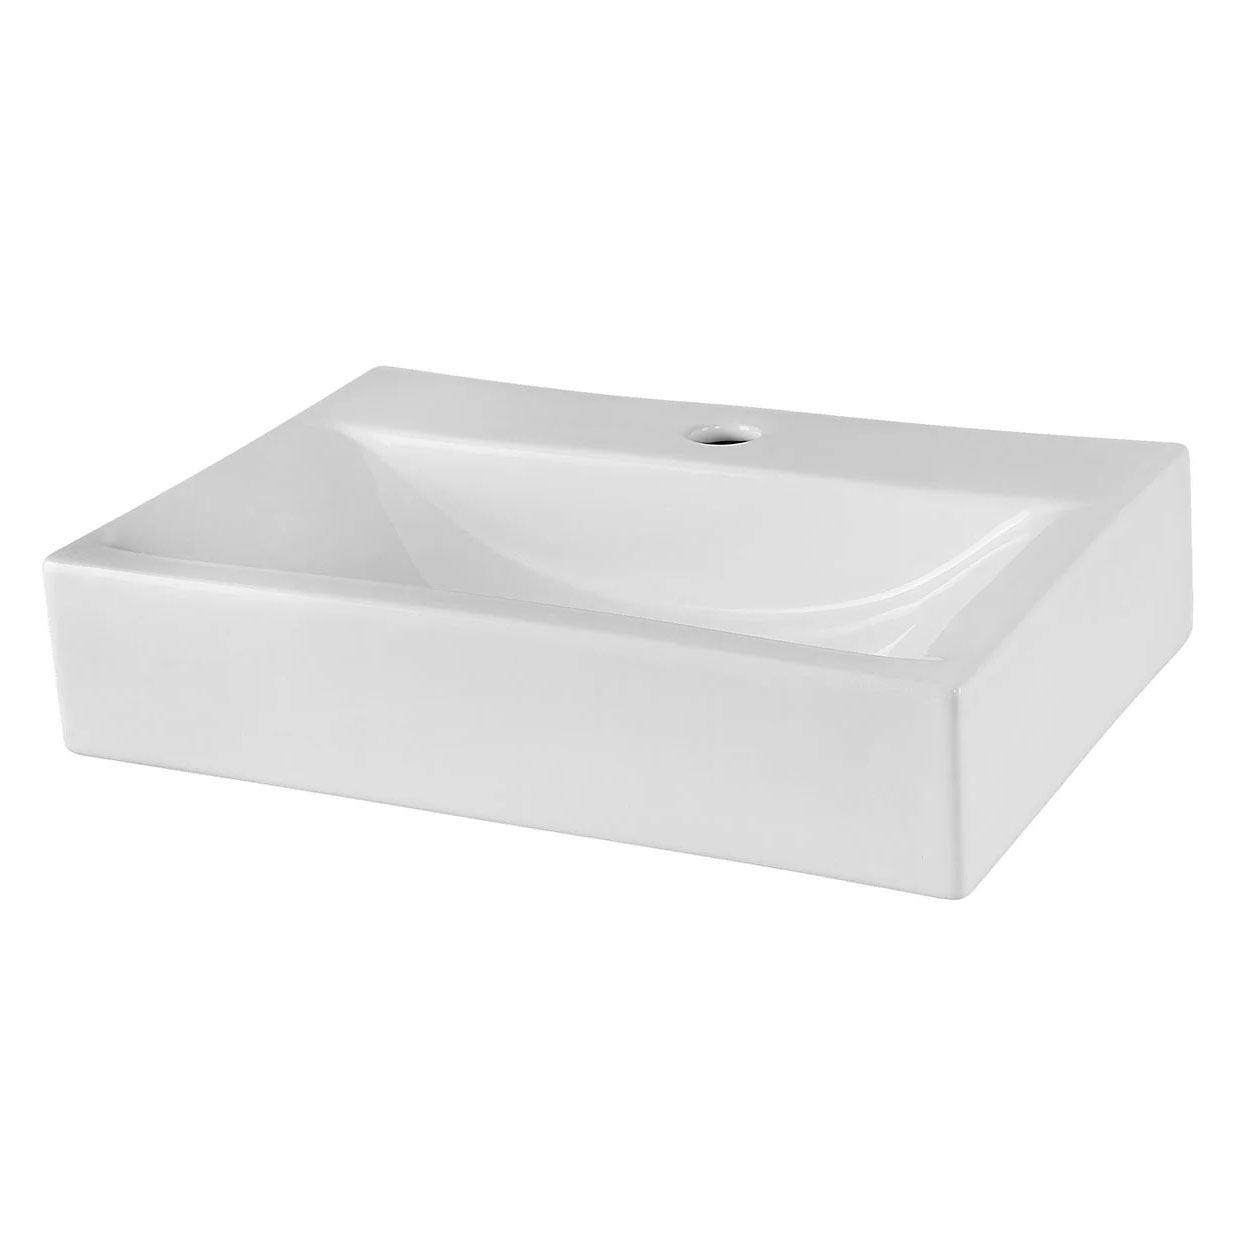 Premier Vessels Rectangular Countertop Basin 460mm Wide - 1 Tap Hole